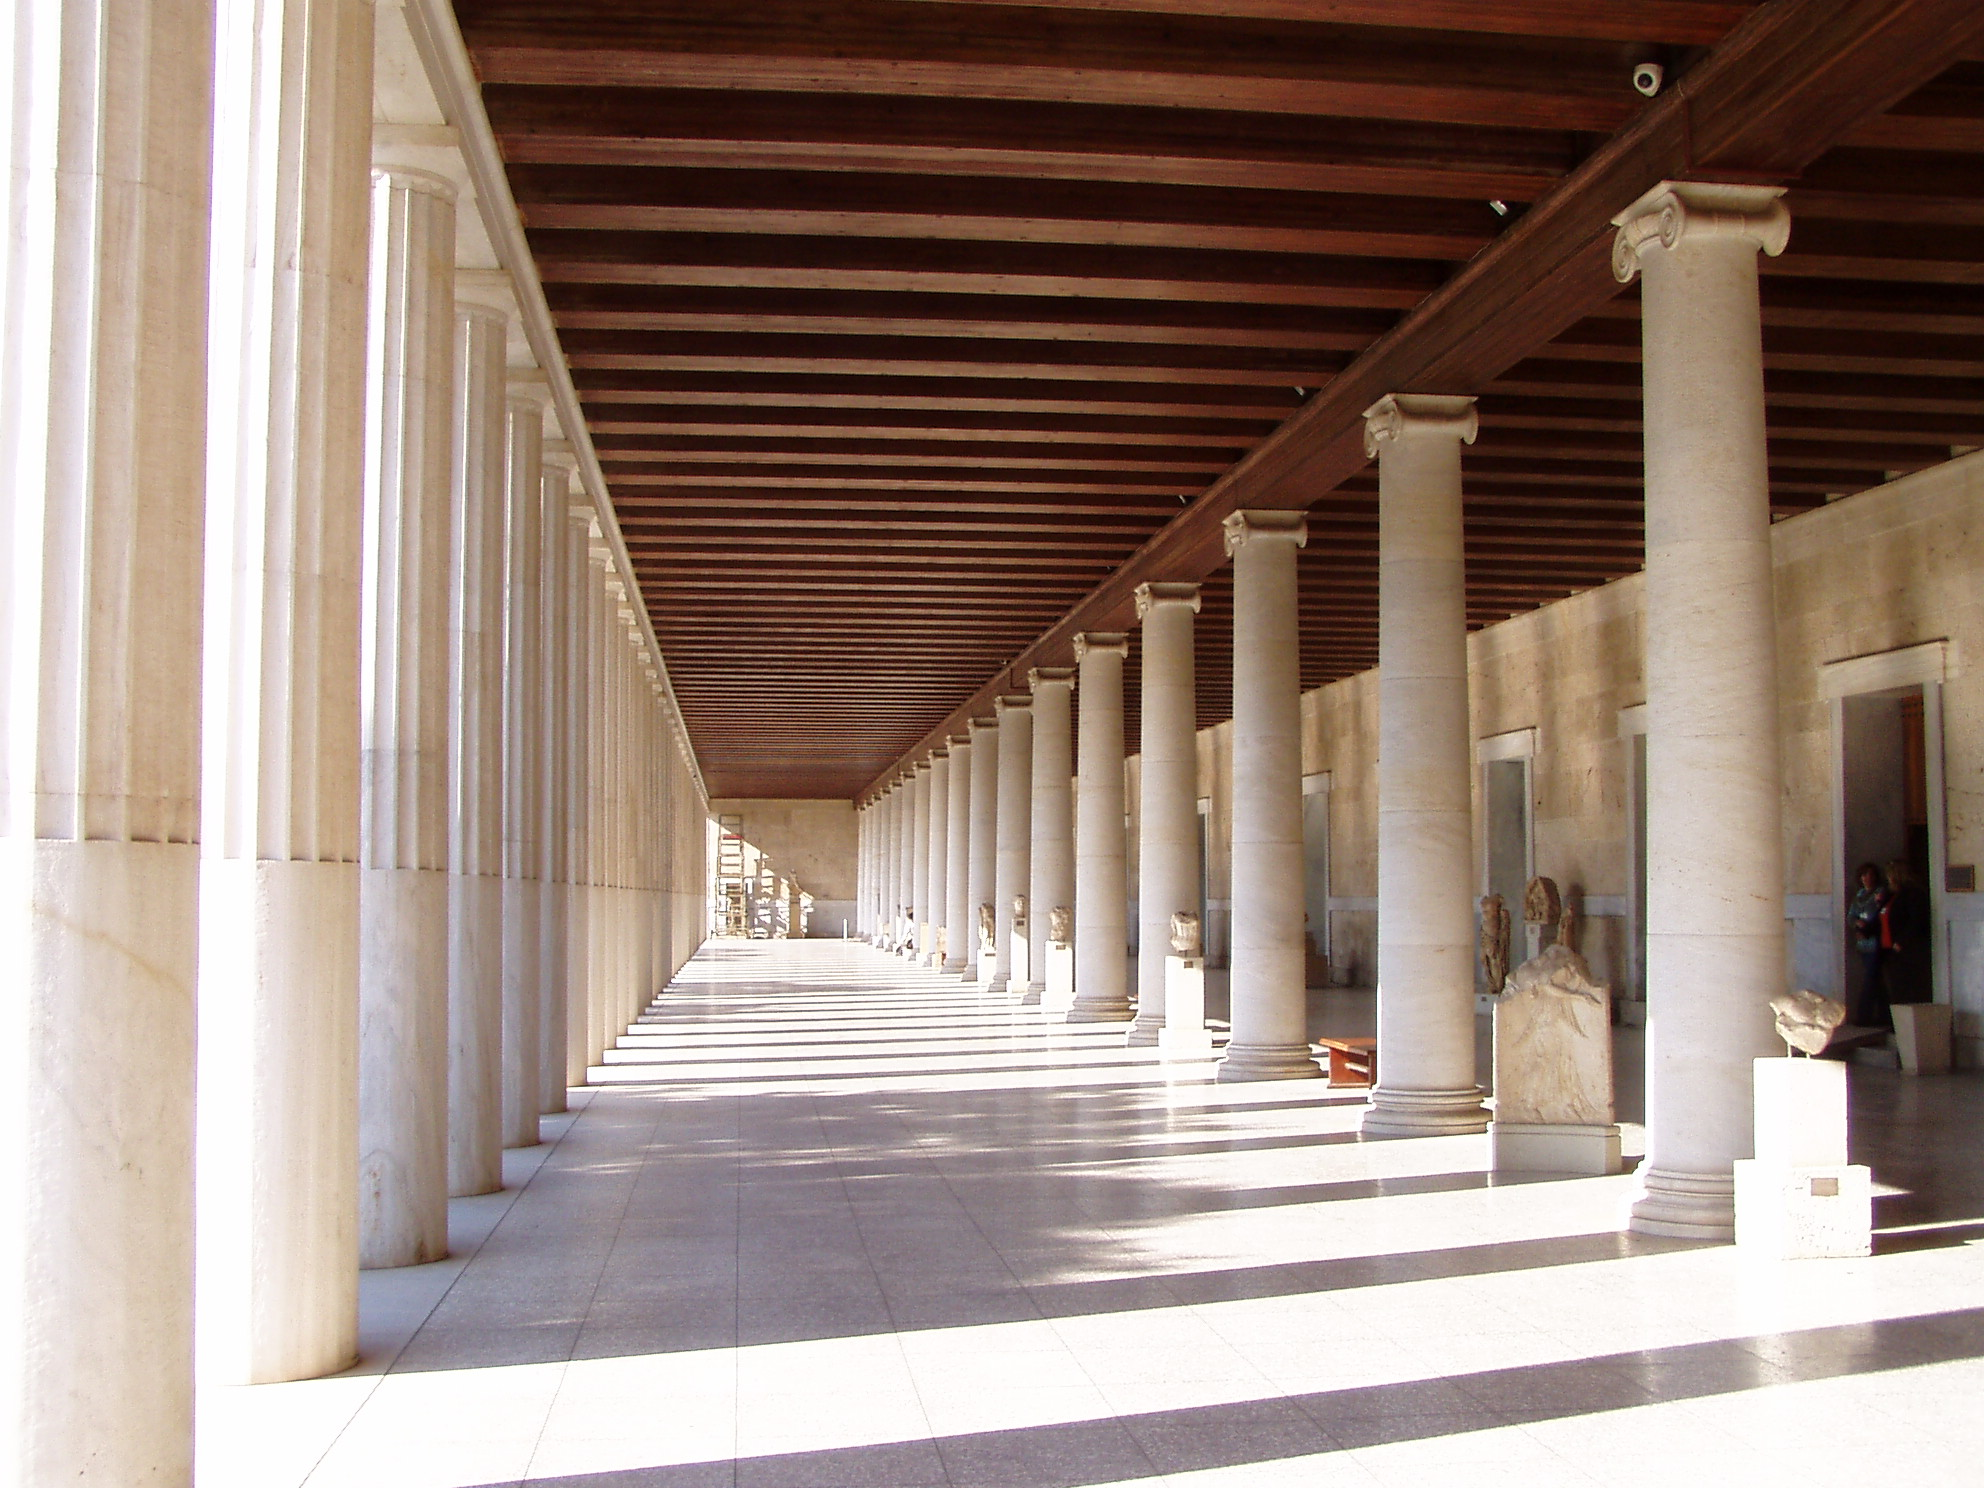 stoa_of_attalos_at_the_ancient_agora_of_athens_3.jpg